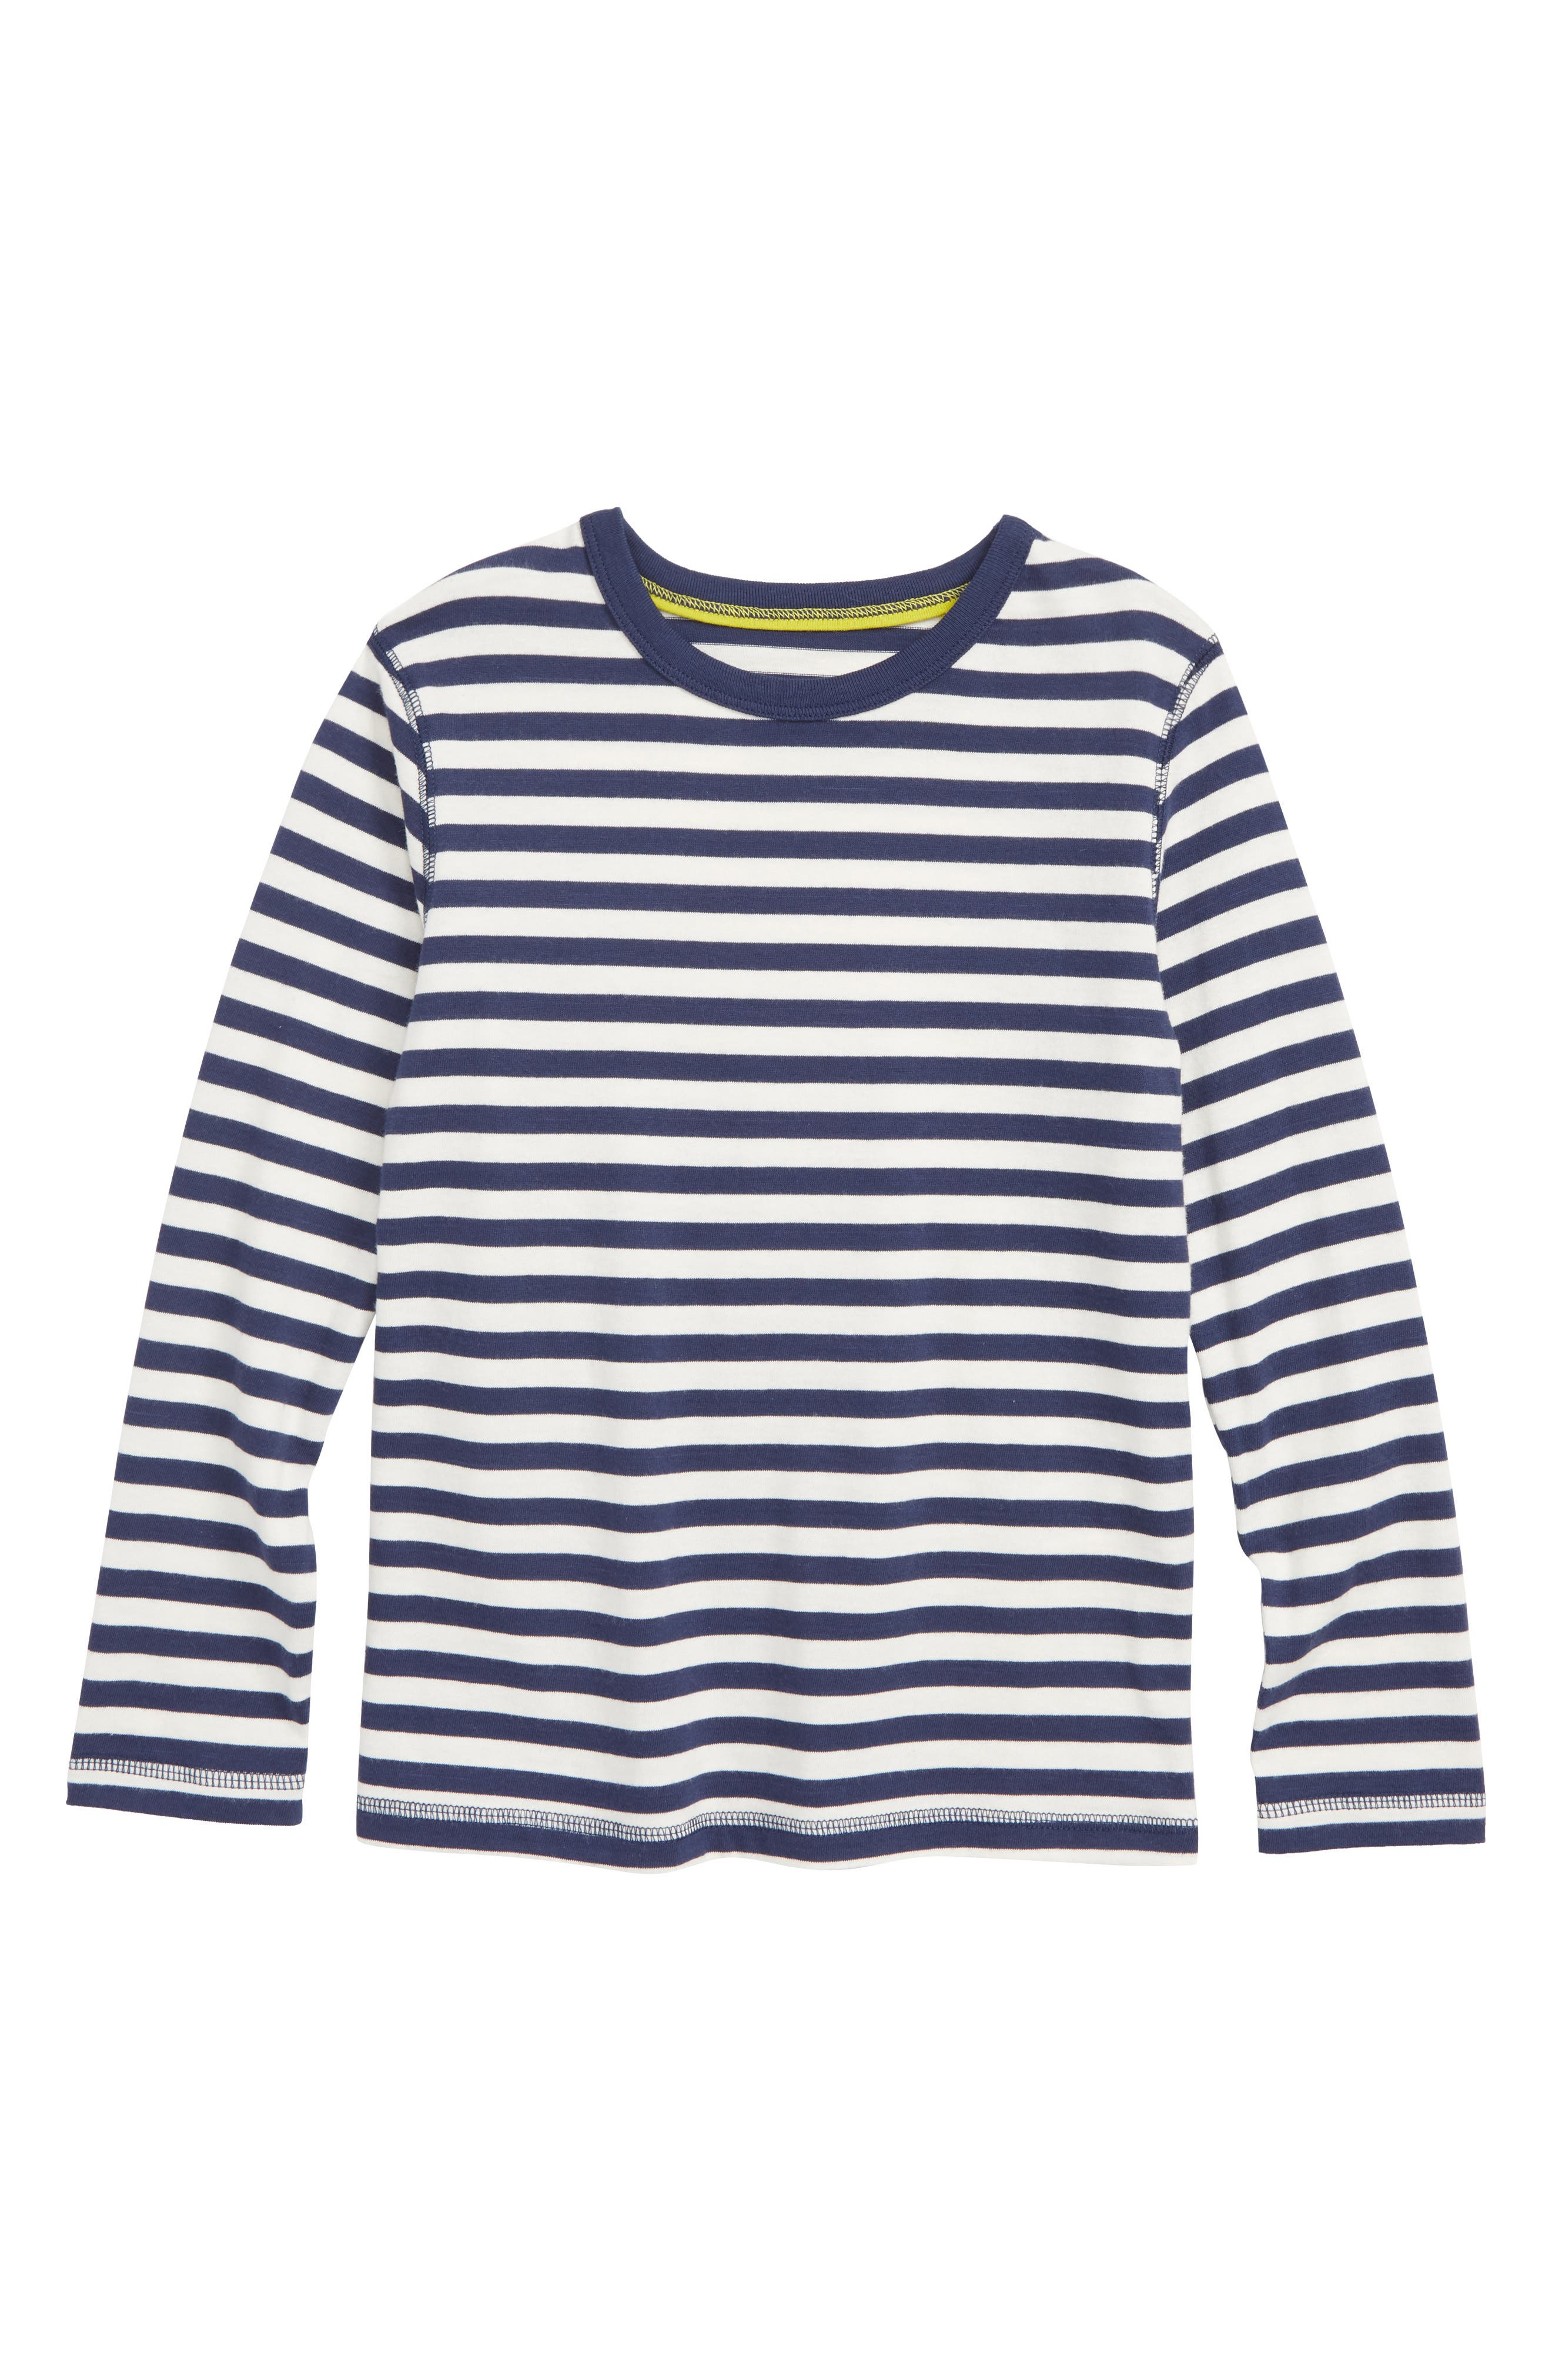 Supersoft Stripe T-Shirt,                             Main thumbnail 1, color,                             414